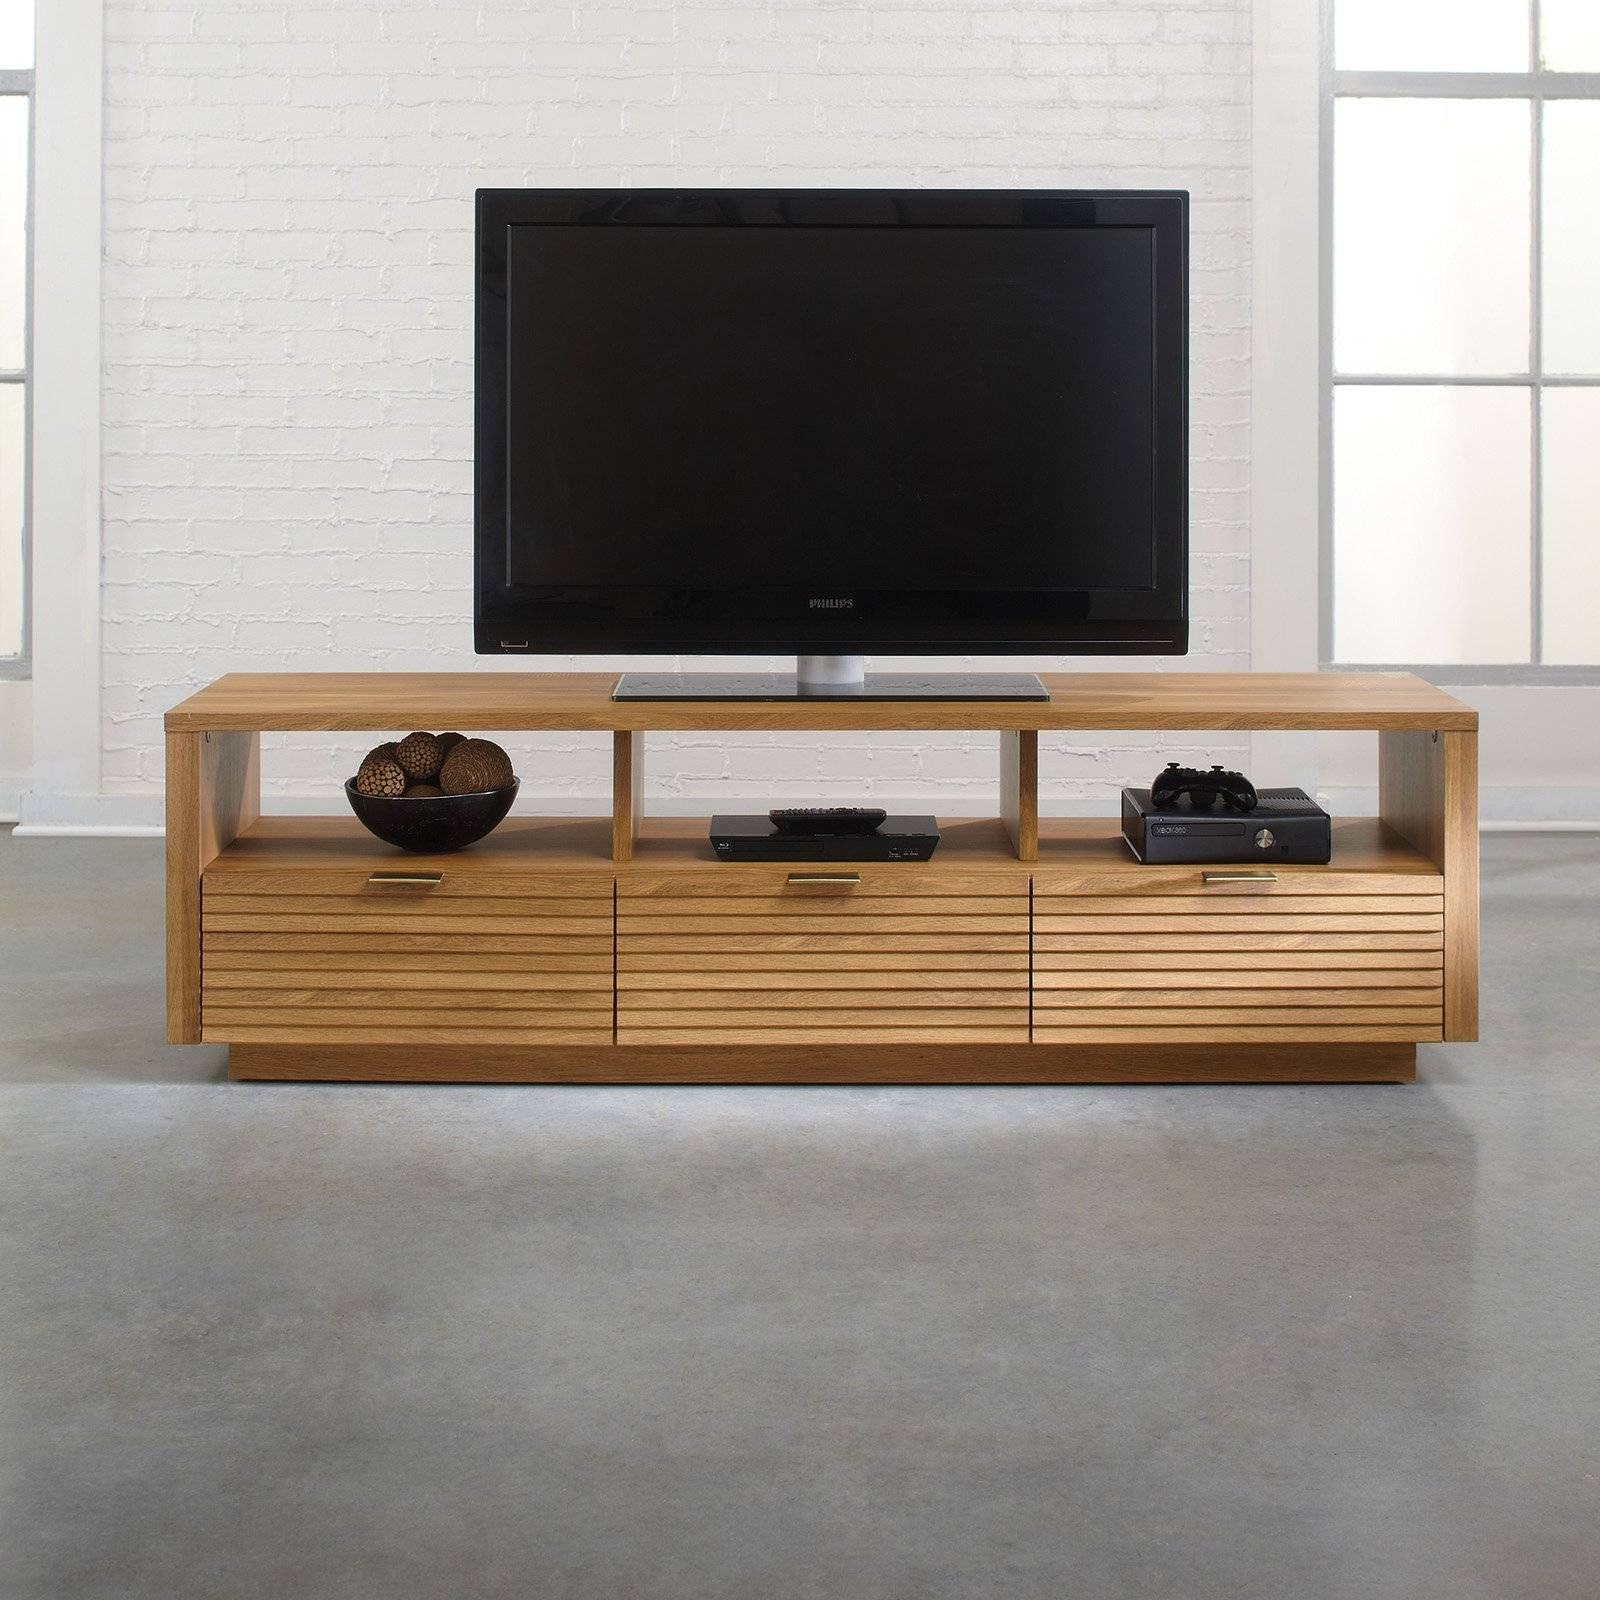 Belham Living Carter Mid-Century Modern Tv Stand | Hayneedle intended for Modern Wooden Tv Stands (Image 1 of 15)